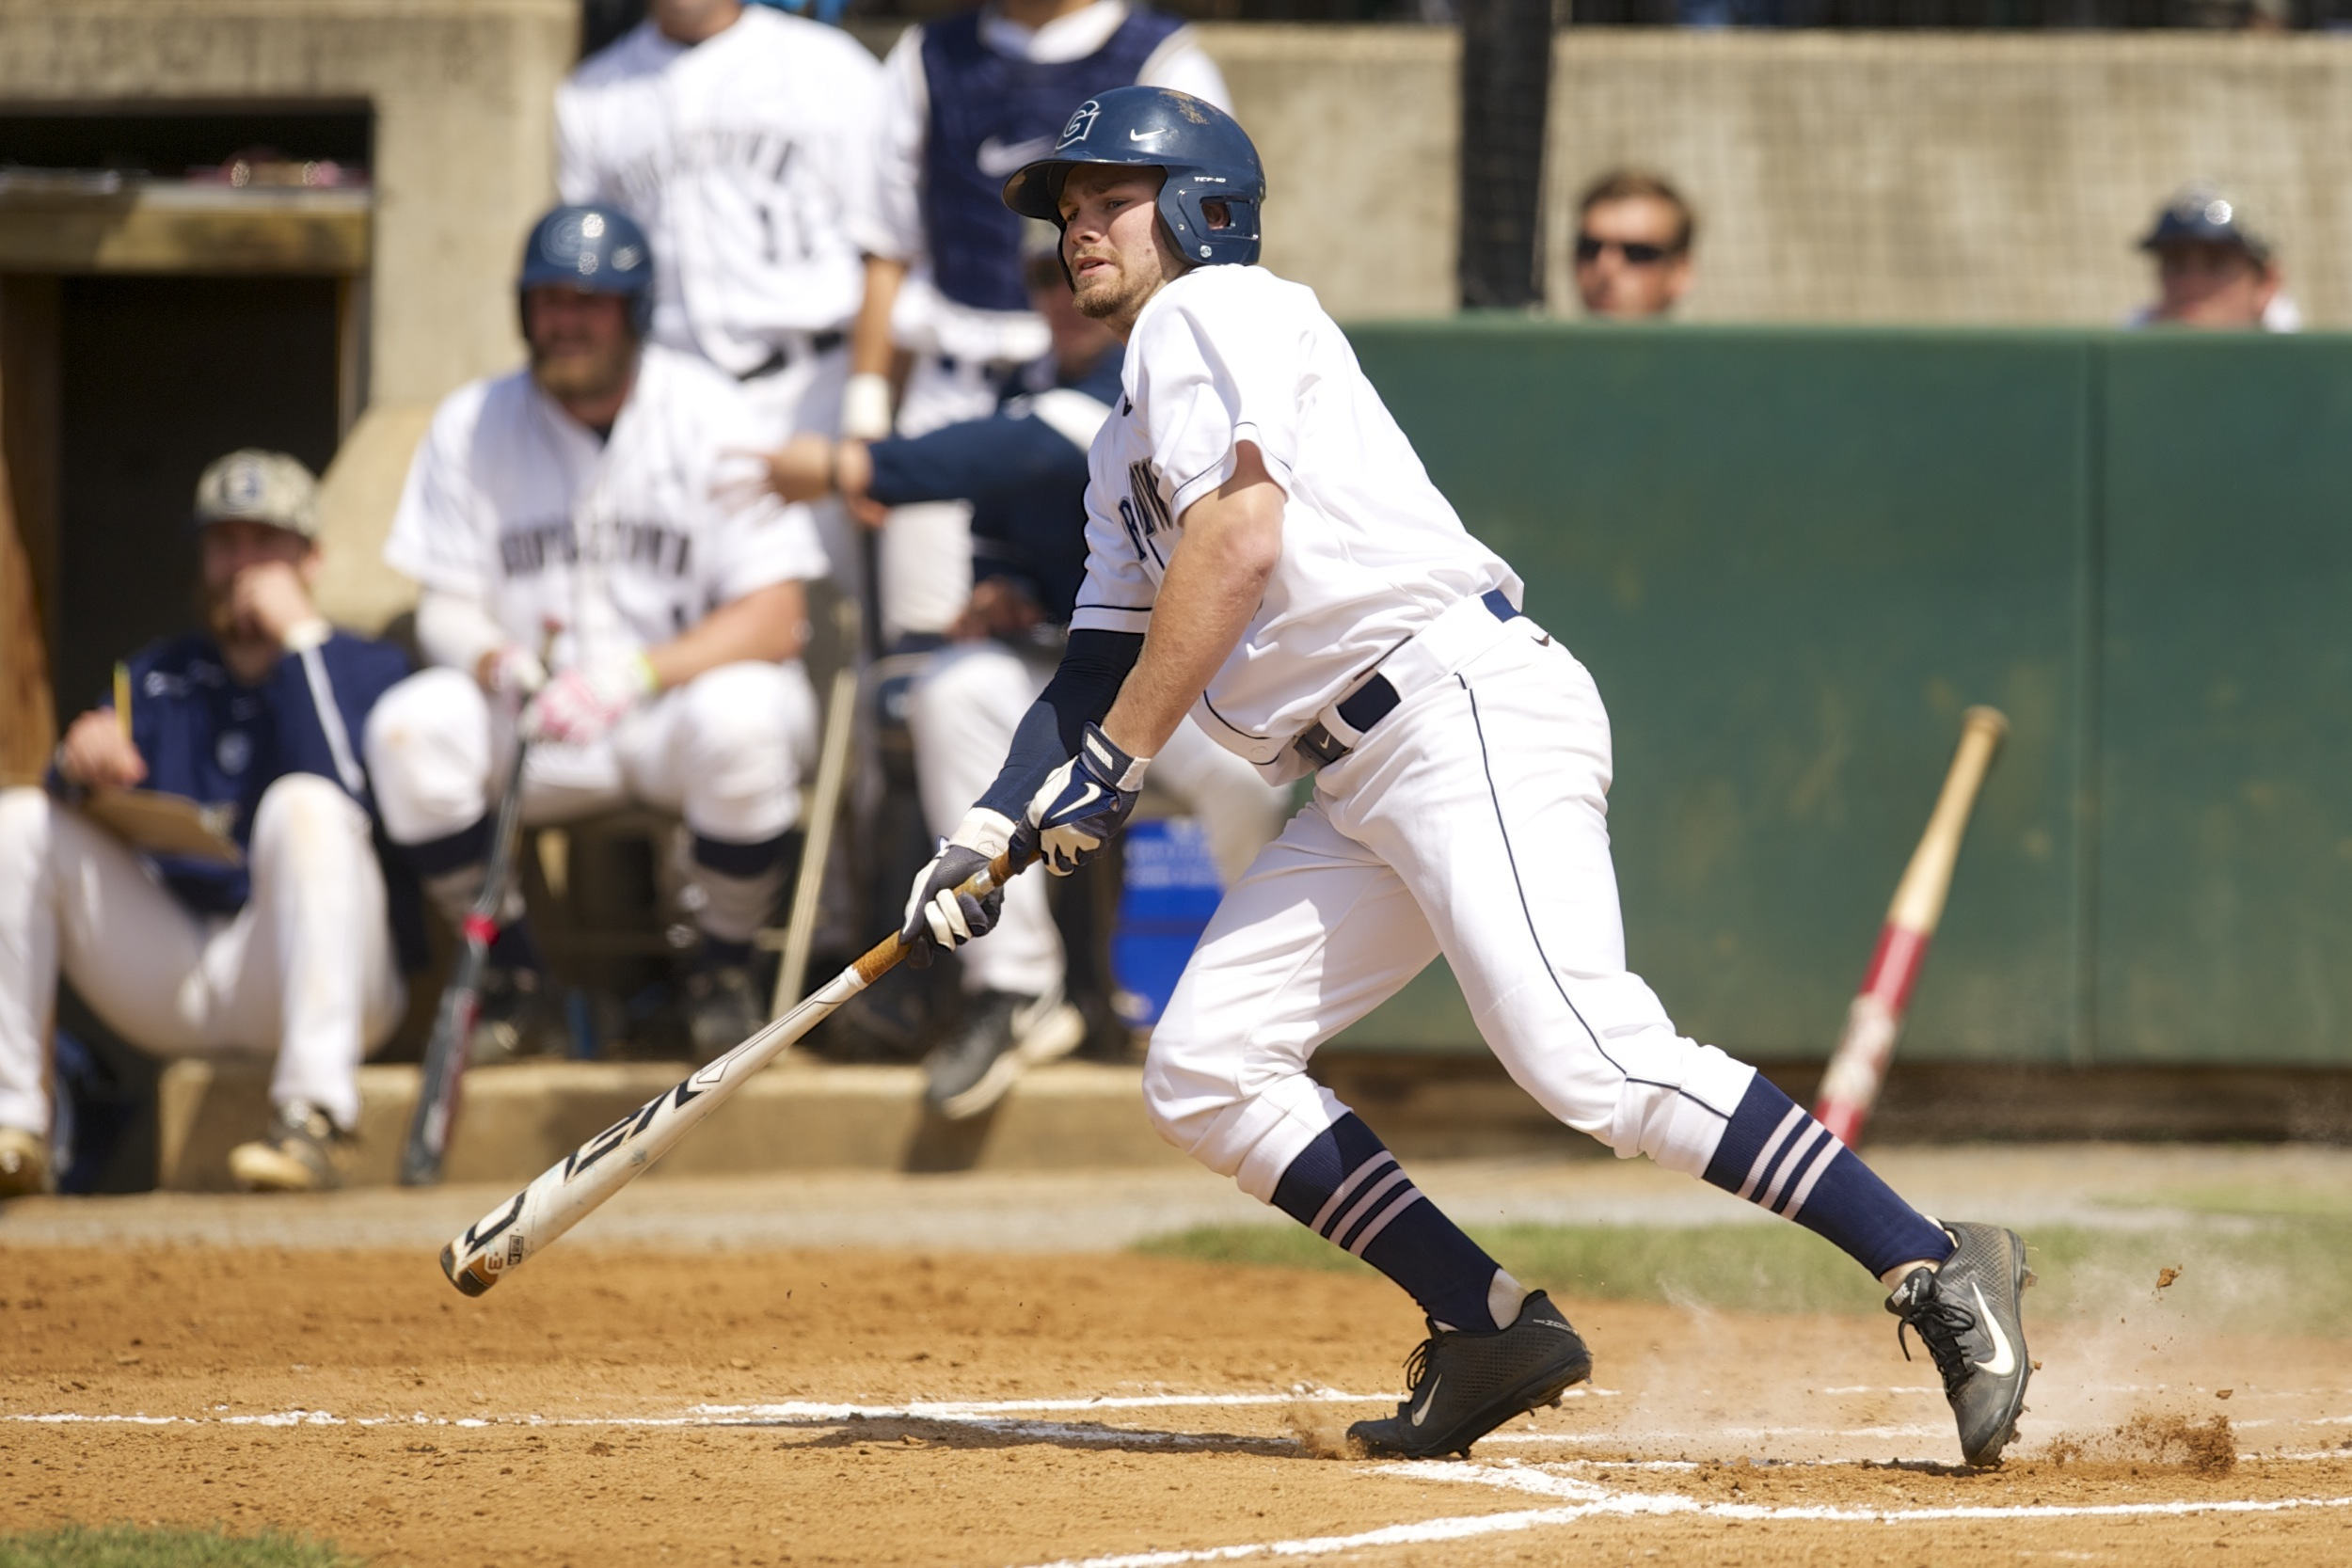 Beau Hall reached base twice with a double and a walk on Friday.